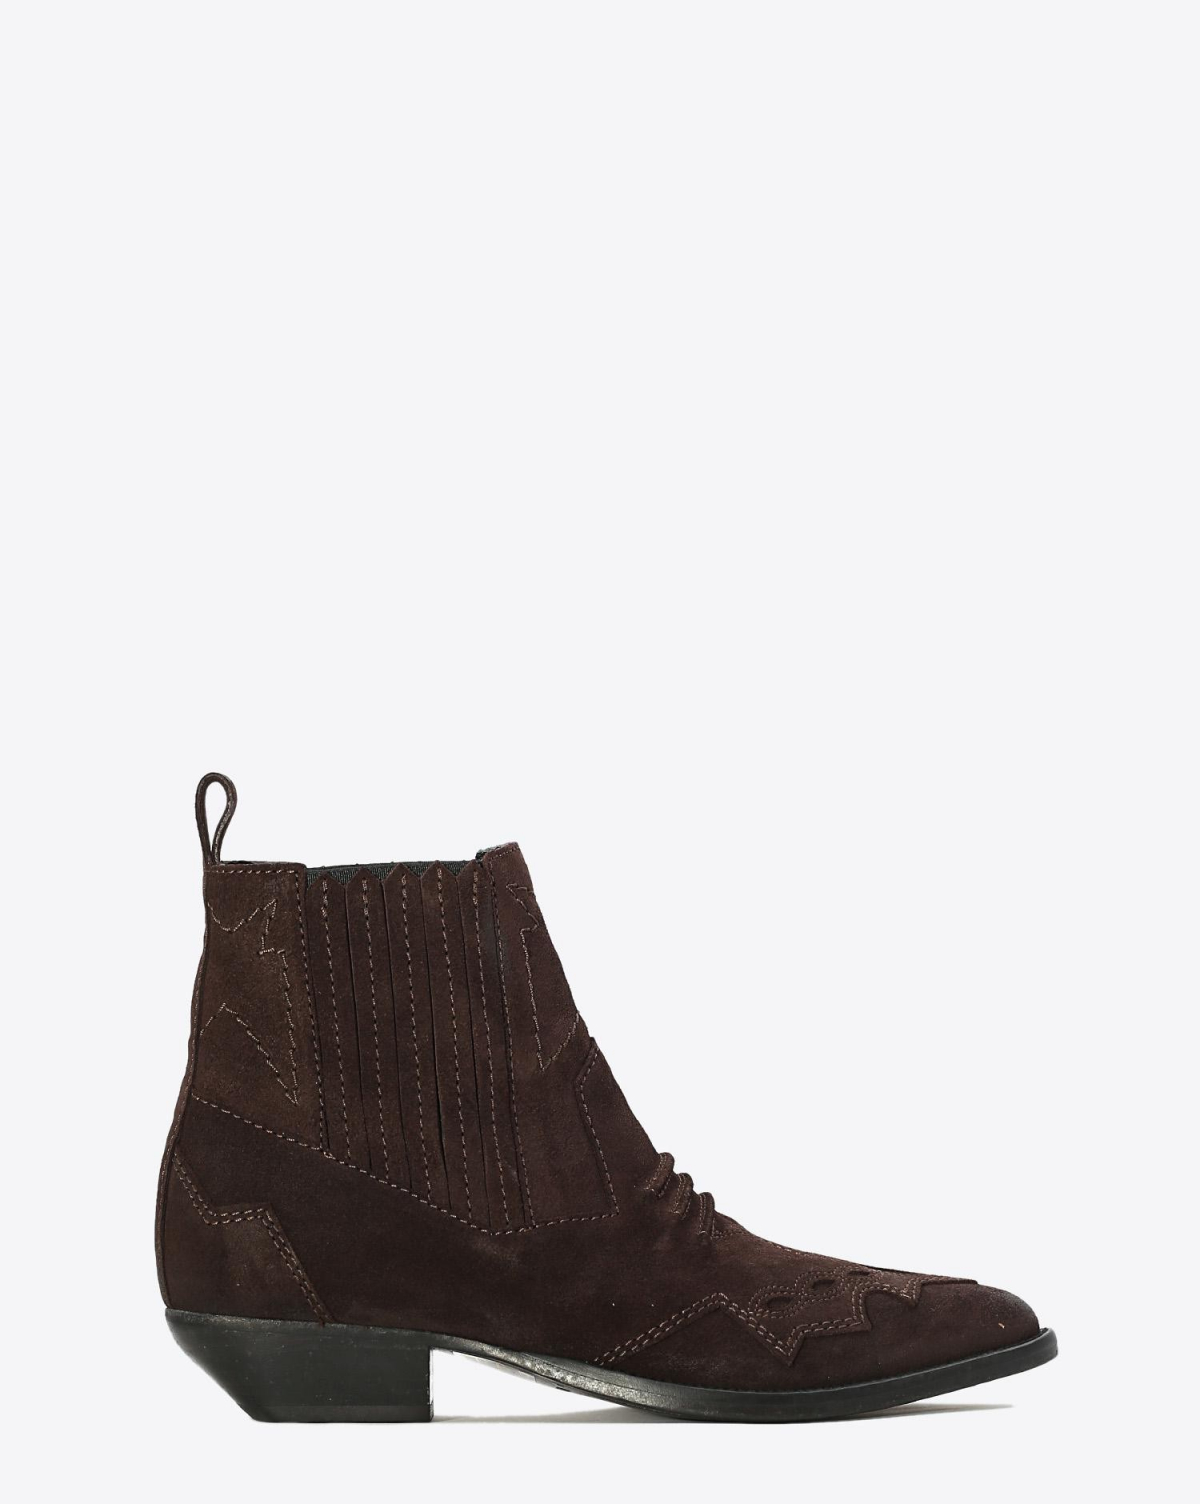 Roseanna Chaussures Boots Santiags TUCSON - Chocolat